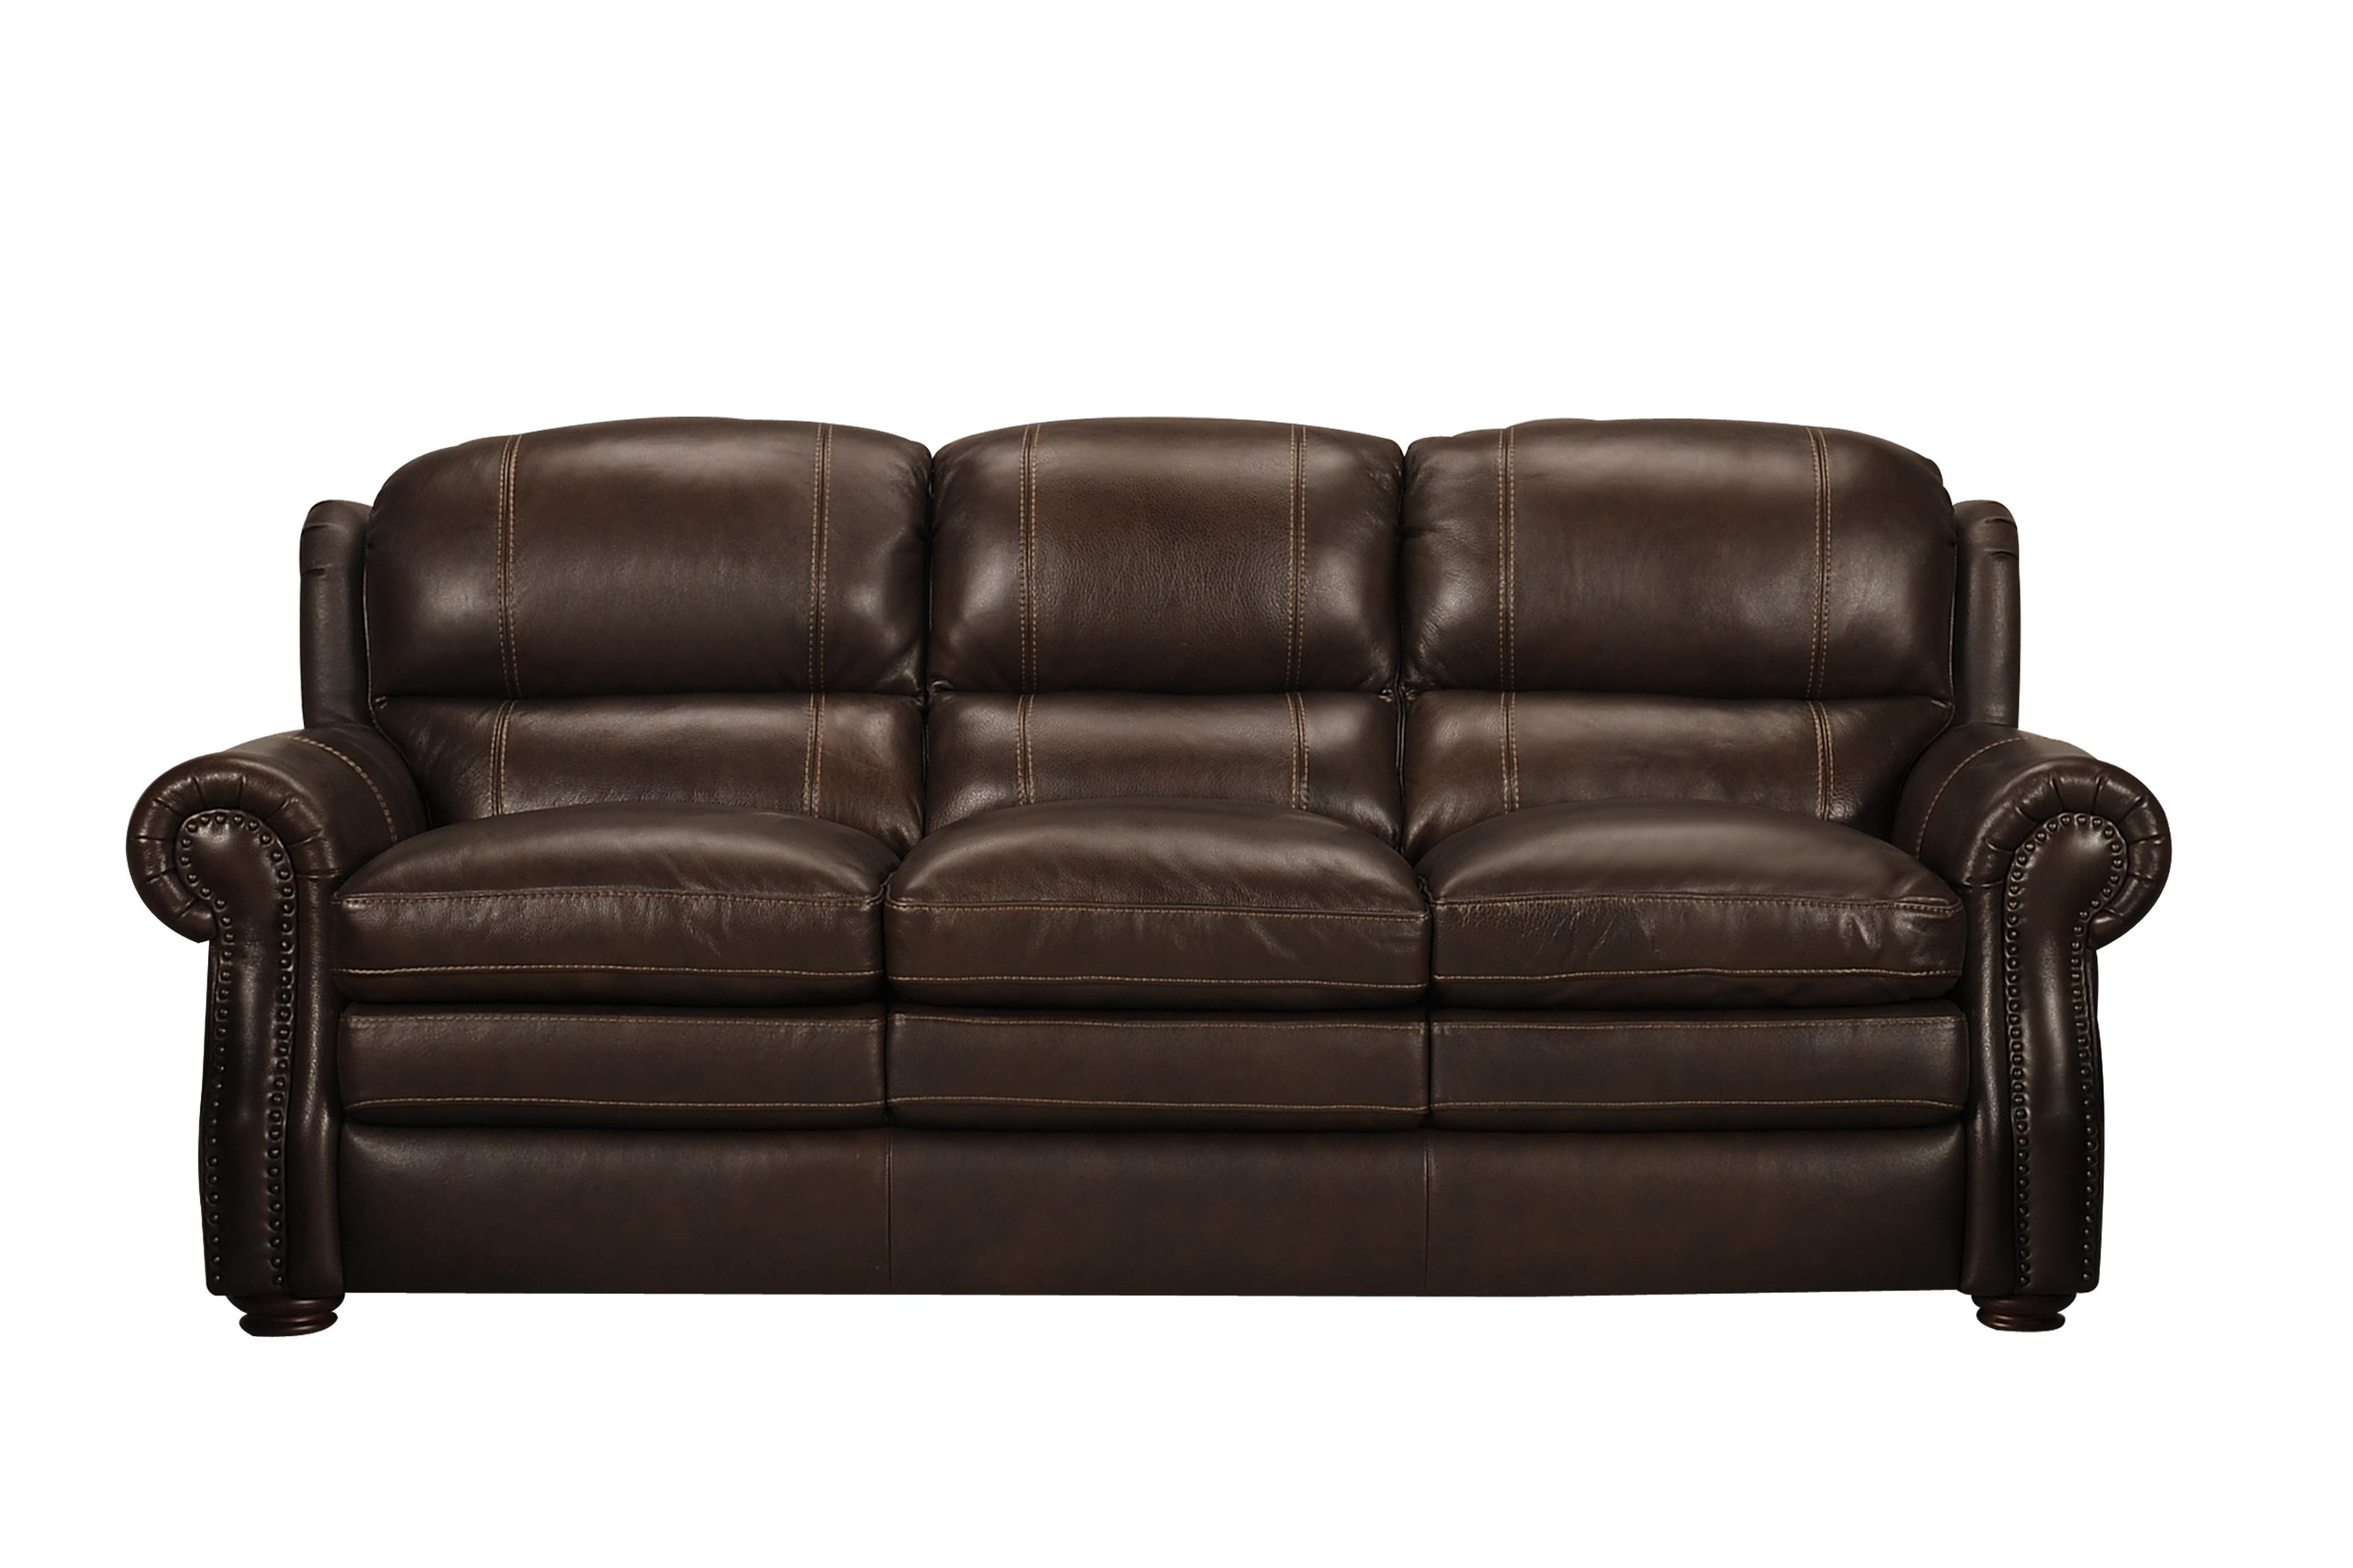 Violino 3555 Leather Sofa Dunk & Bright Furniture Sofas